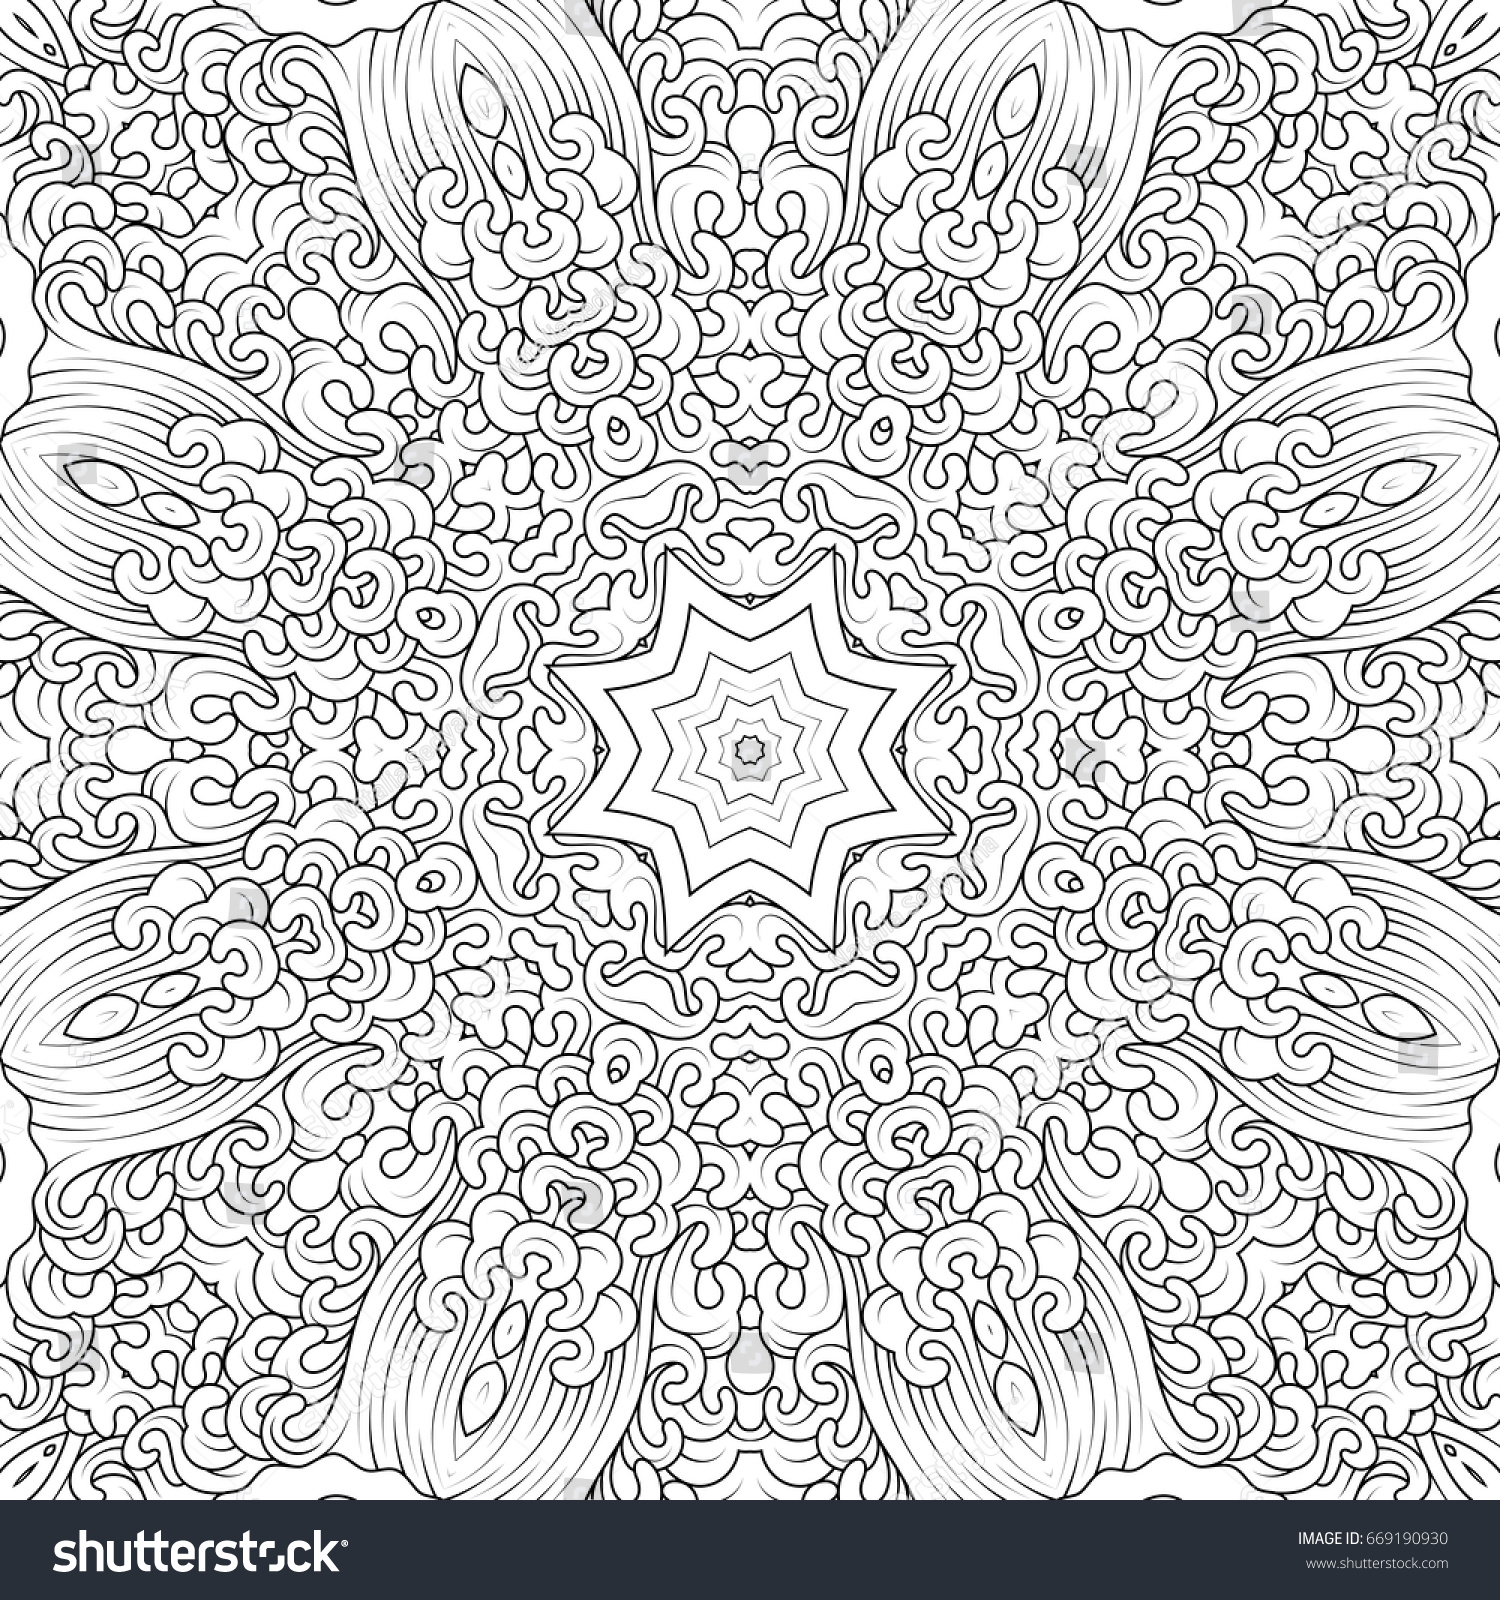 Black And White Contour Mandala In Tibetan Iconography Style Adult Coloring Books Design Vector